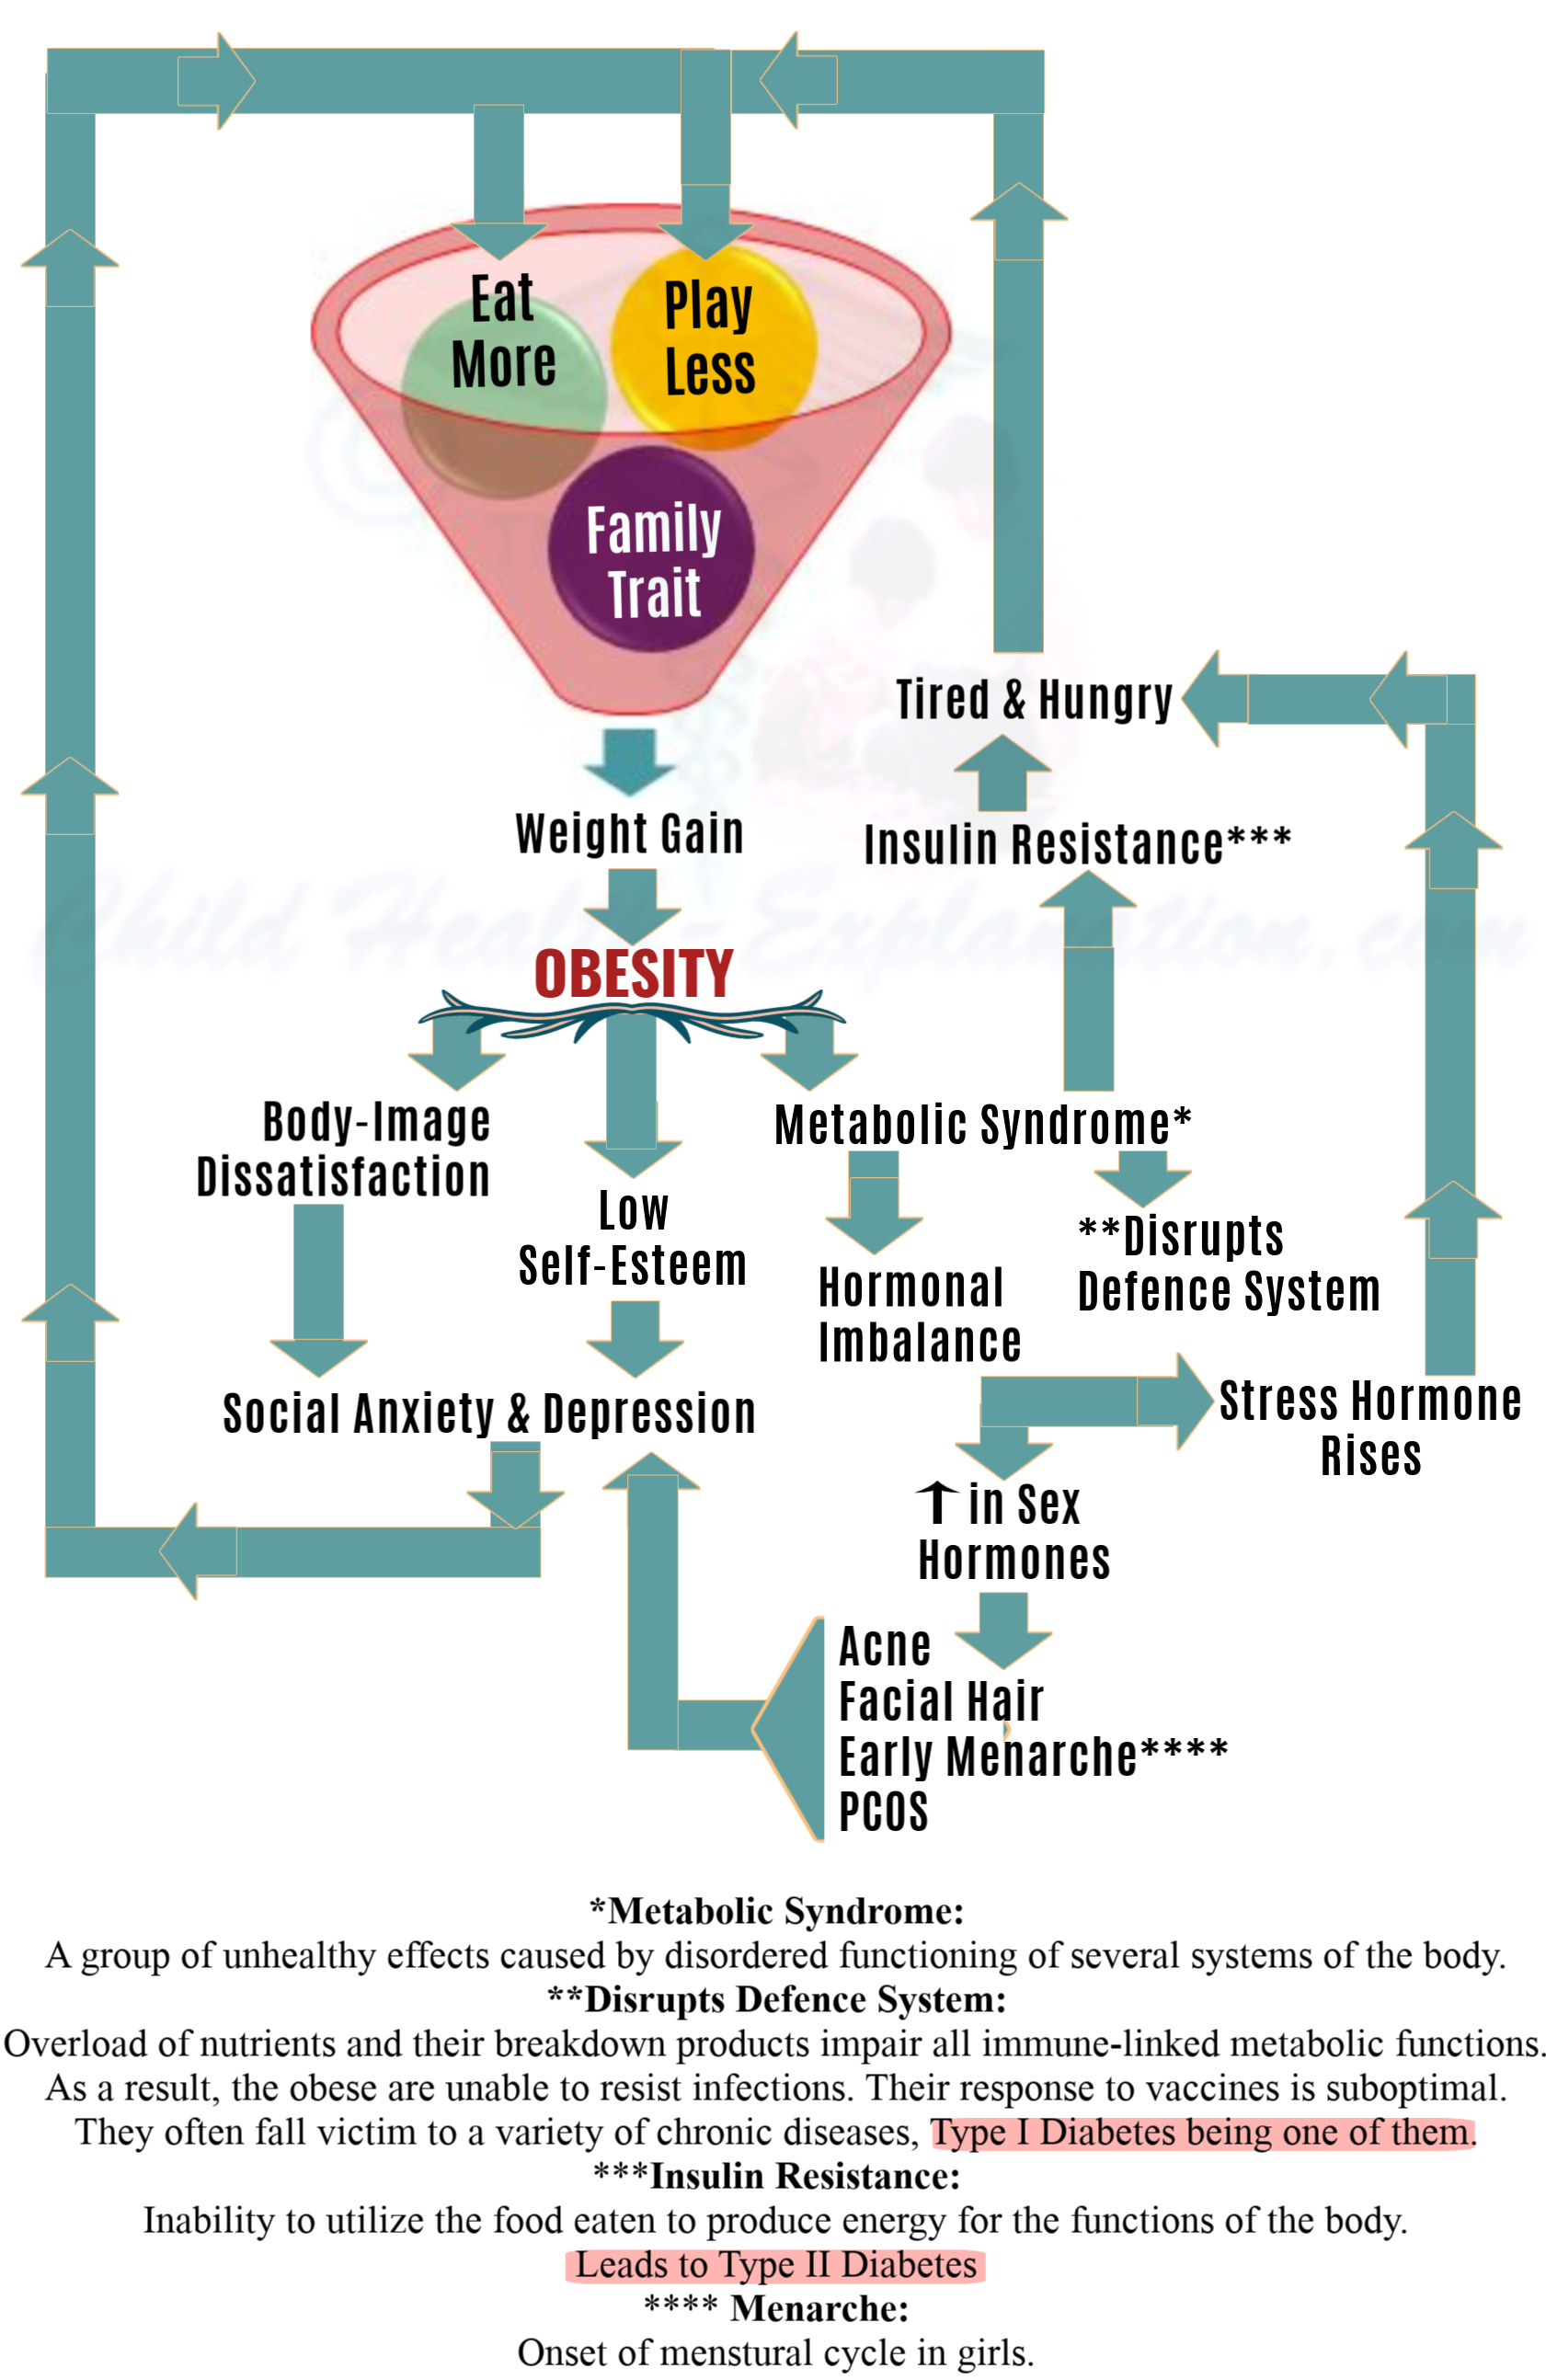 Understanding The Obesity Trap And Its Effects on Well-Being